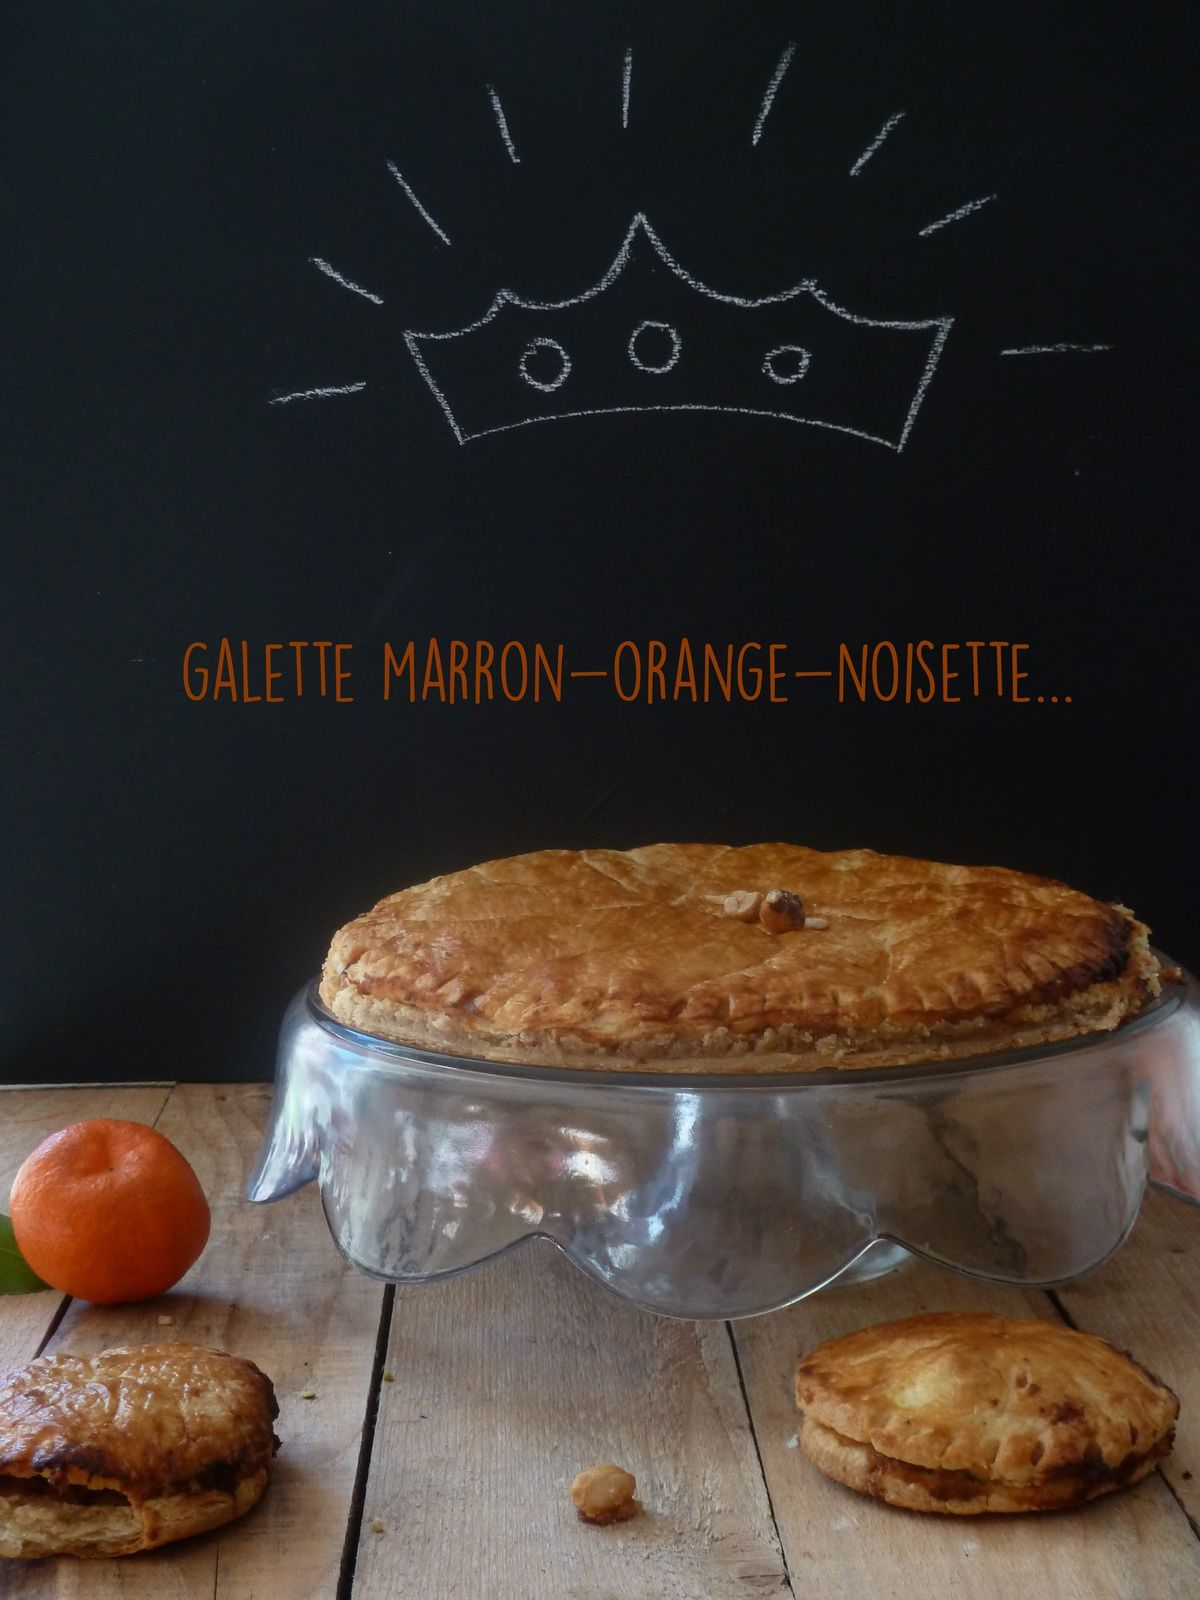 Galette marron-orange-noisette